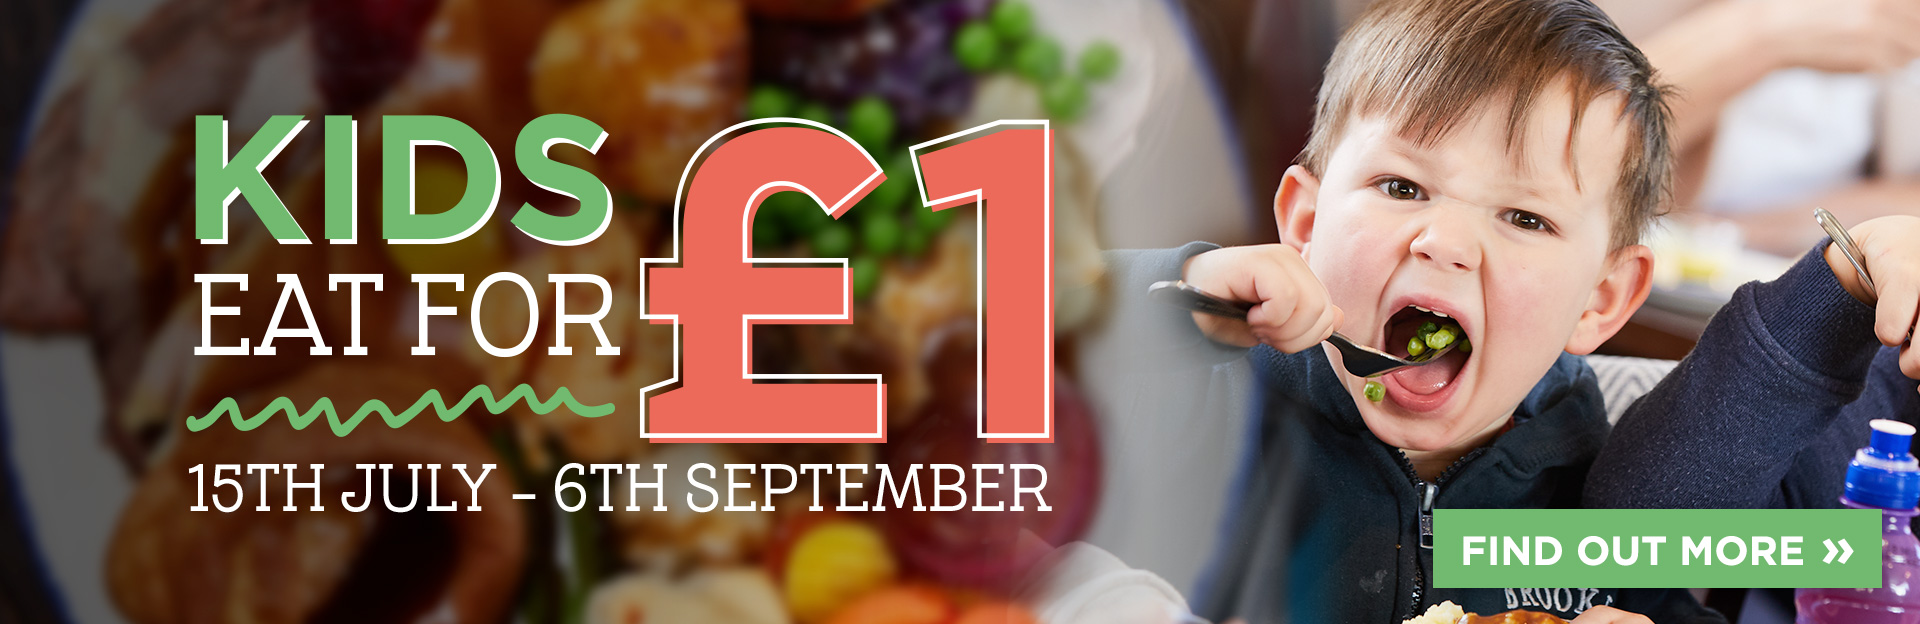 Kids Eat for £1 at The Hollybush